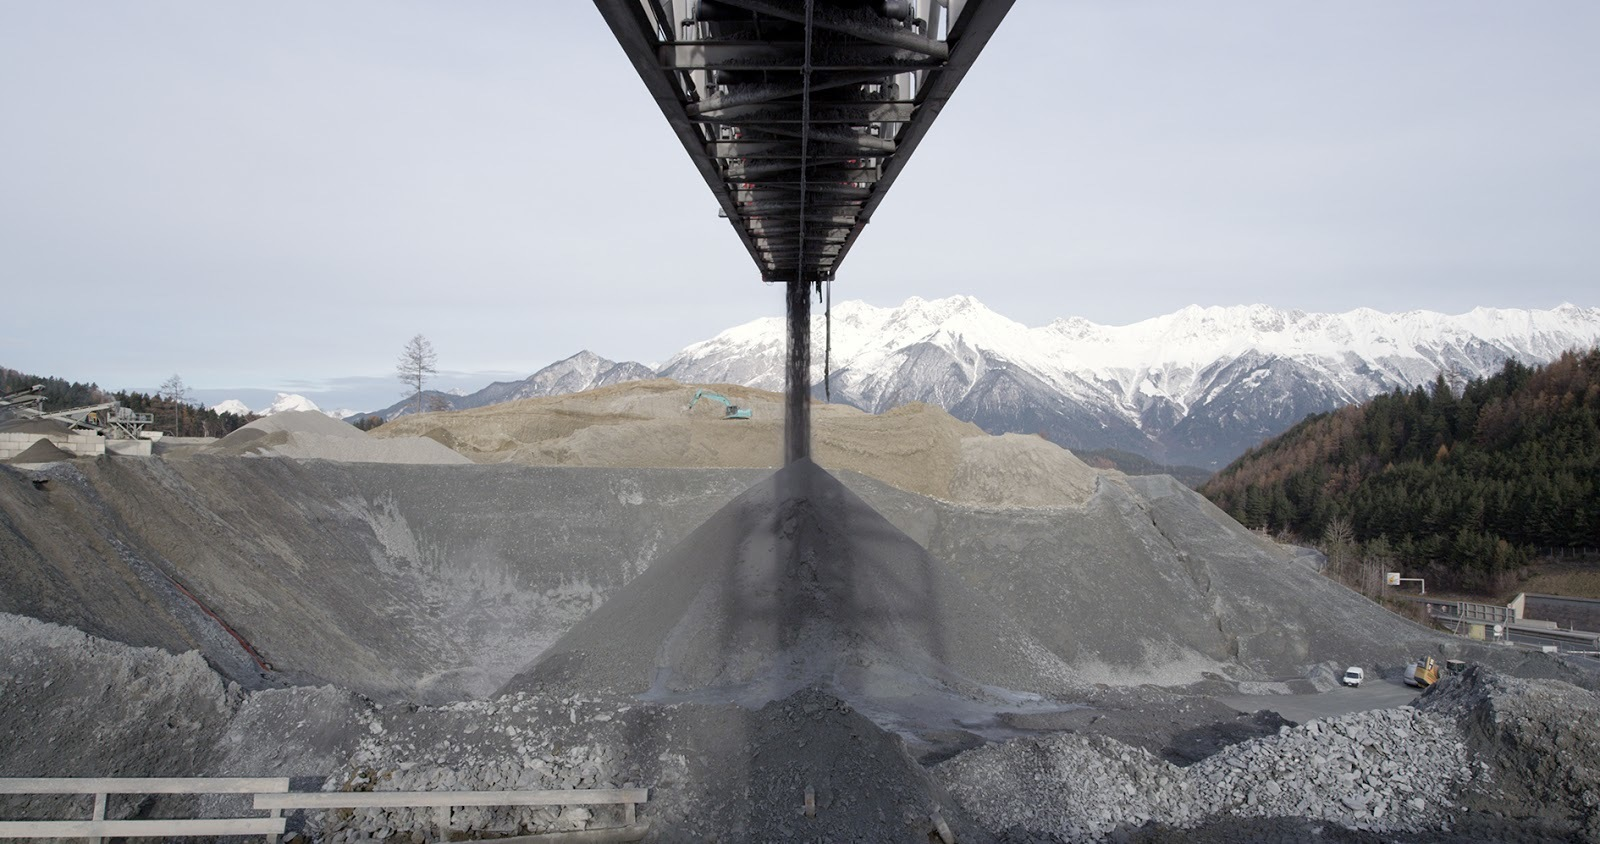 Tunnel mining in Brenner, Austria from the documentary film Earth